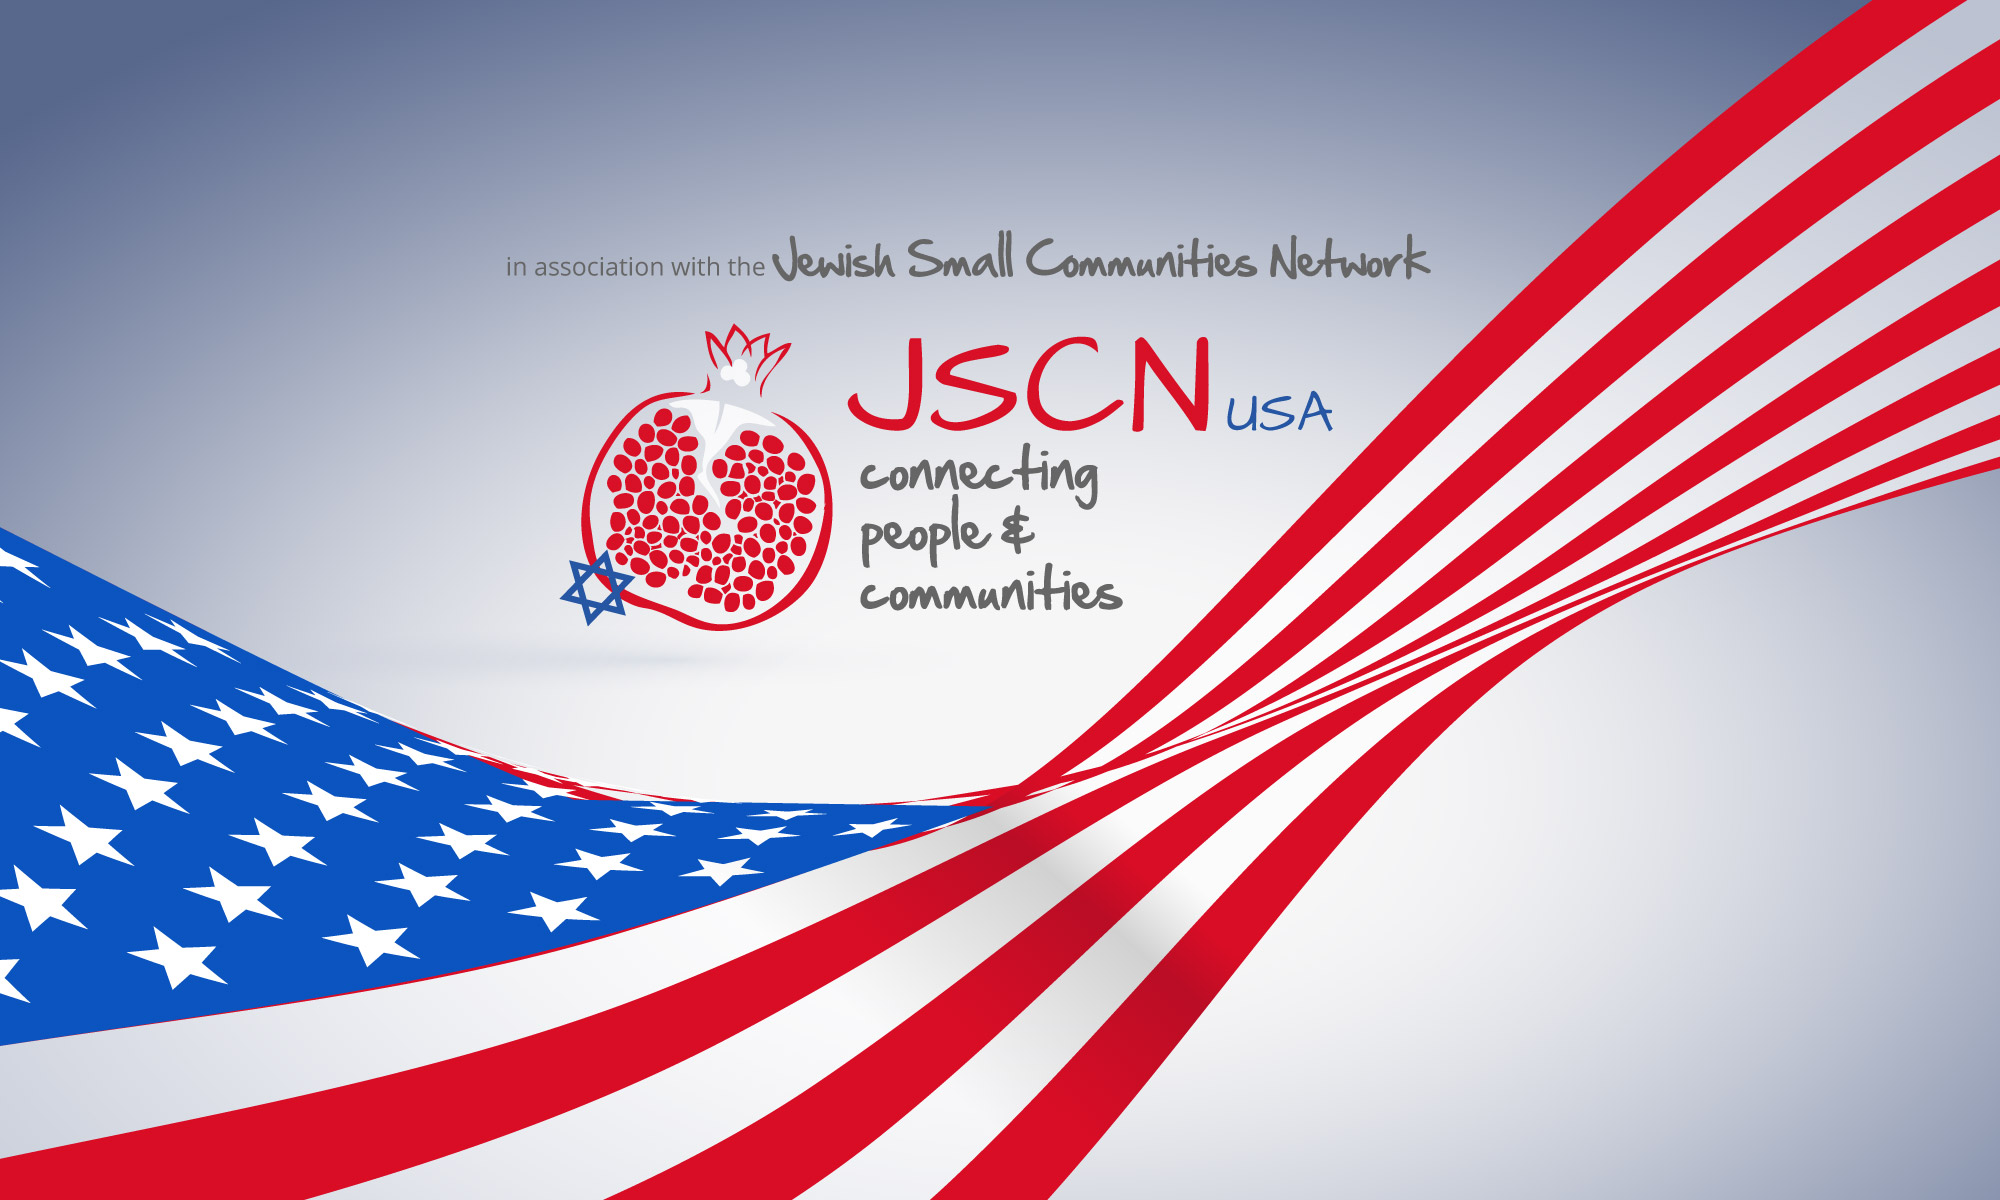 Jewish Small Communities Network USA